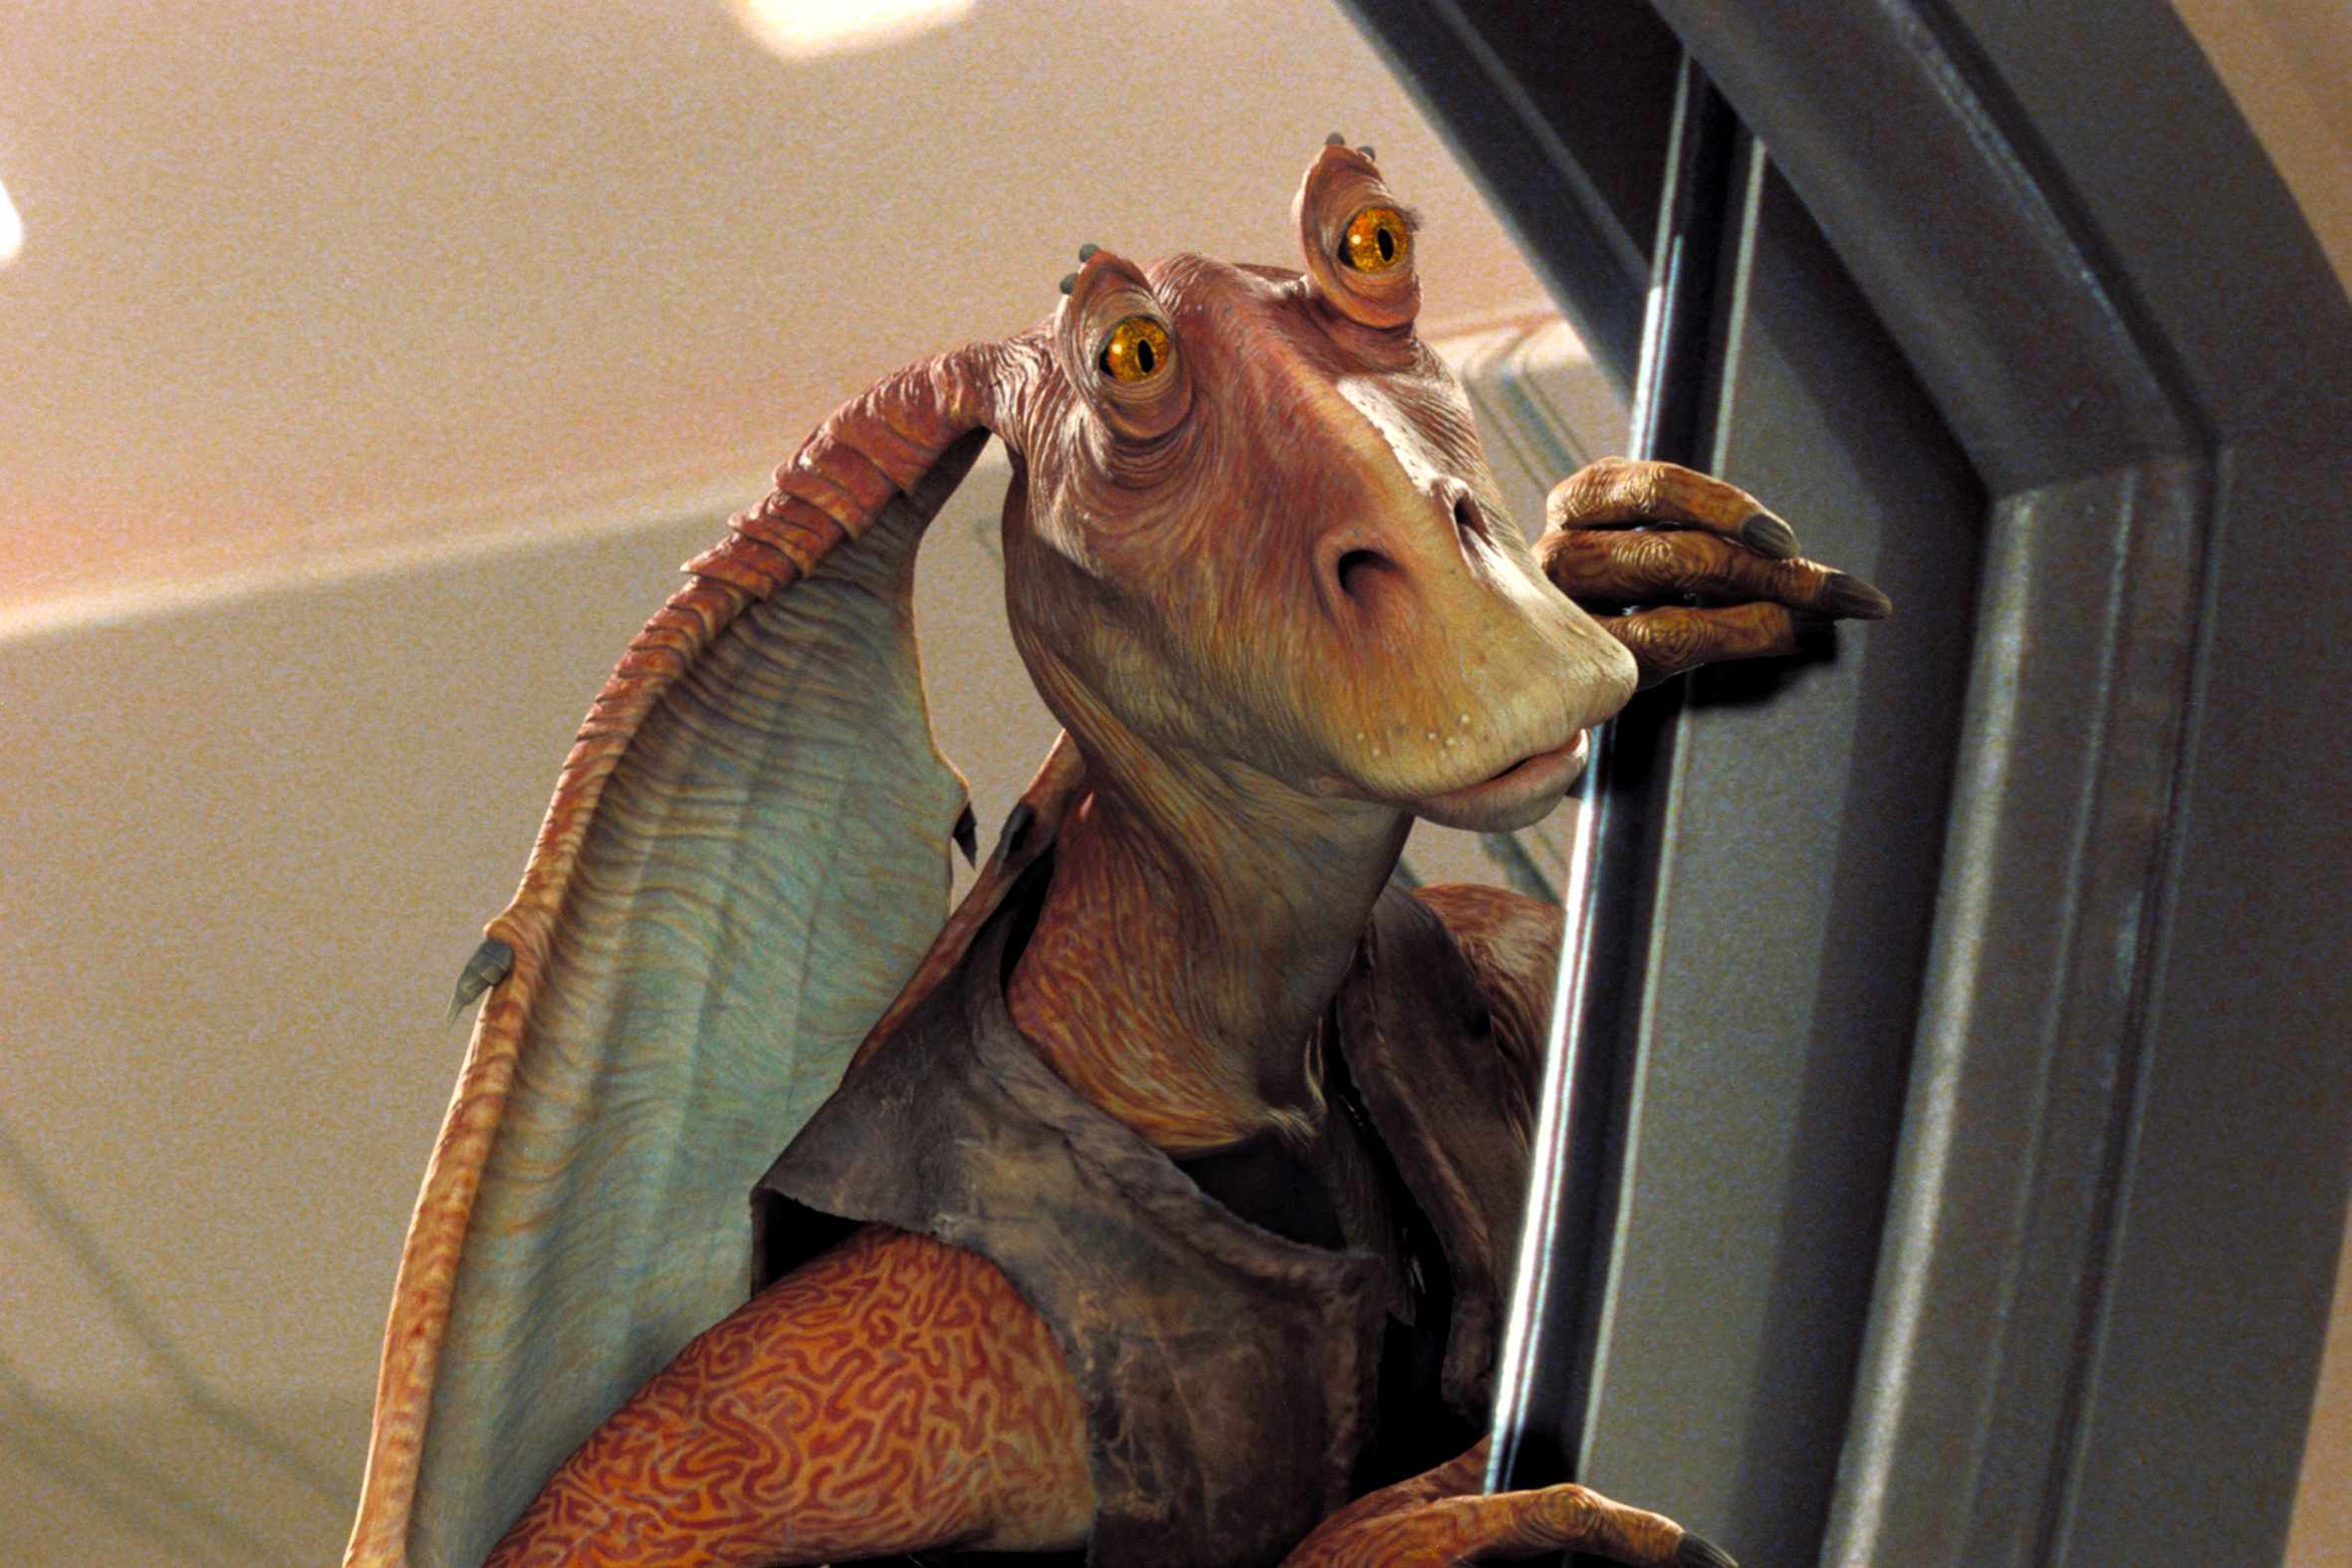 Star Wars Episode I: The Phantom Menace - Unit Stills